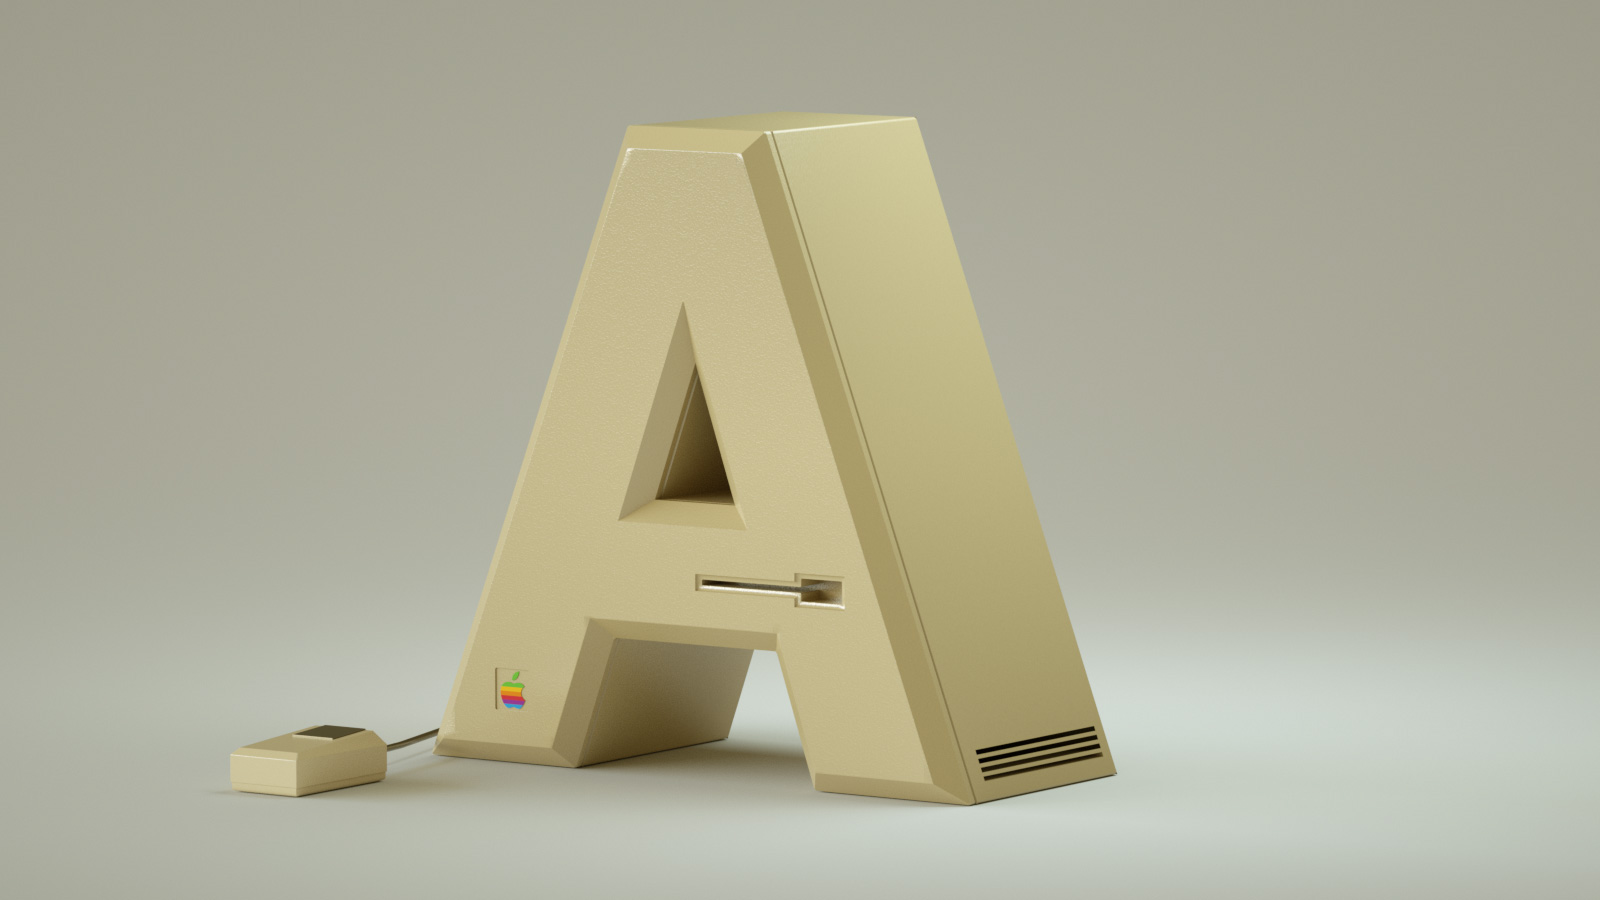 Taking inspiration from a wide variety of electronic brands, designer Vinicius Araujo designed this